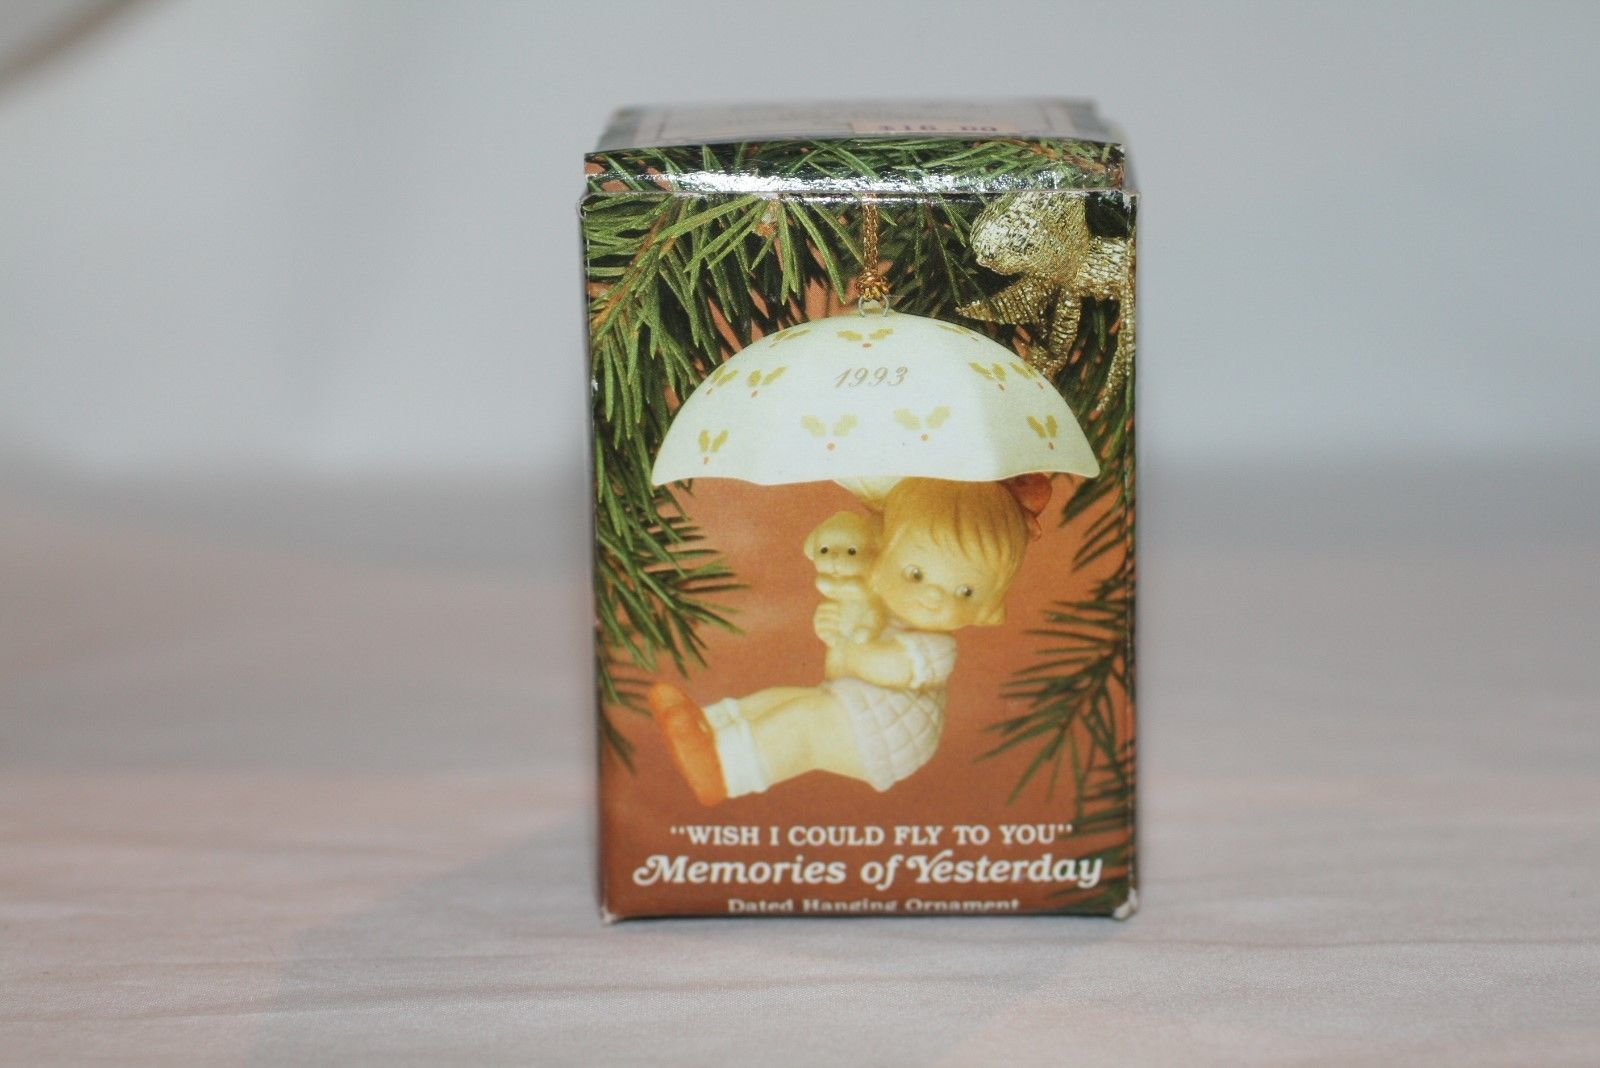 """Memories Of Yesterday Ornament 1993  """"Wish I Could Fly To You""""  #525790  MIB"""